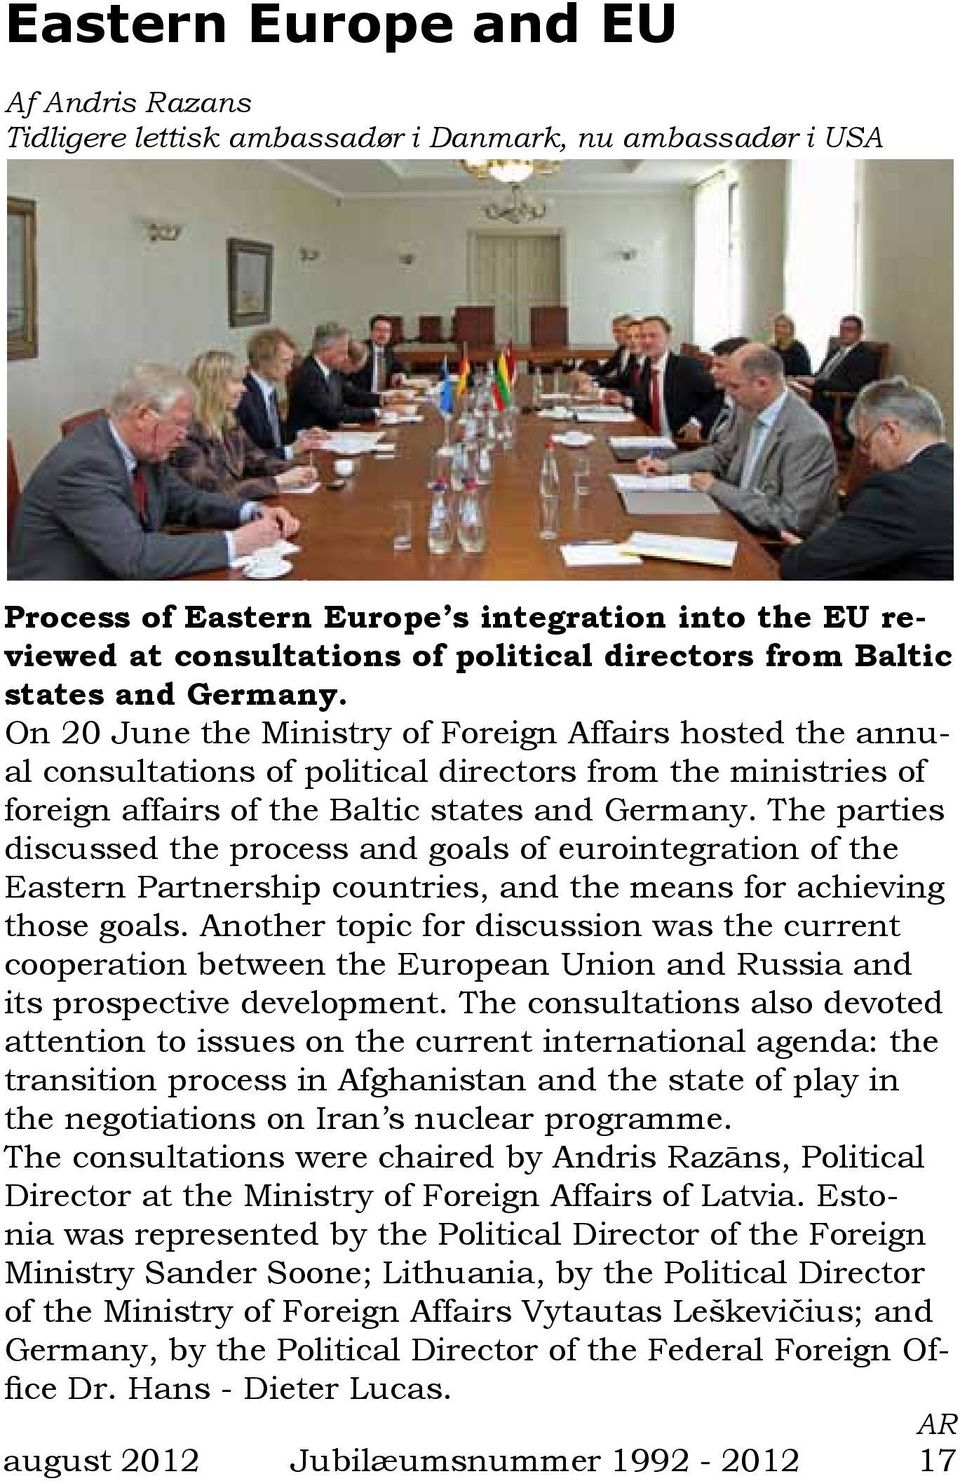 On 20 June the Ministry of Foreign Affairs hosted the annual consultations of political directors from the ministries of foreign affairs of the Baltic states and Germany.